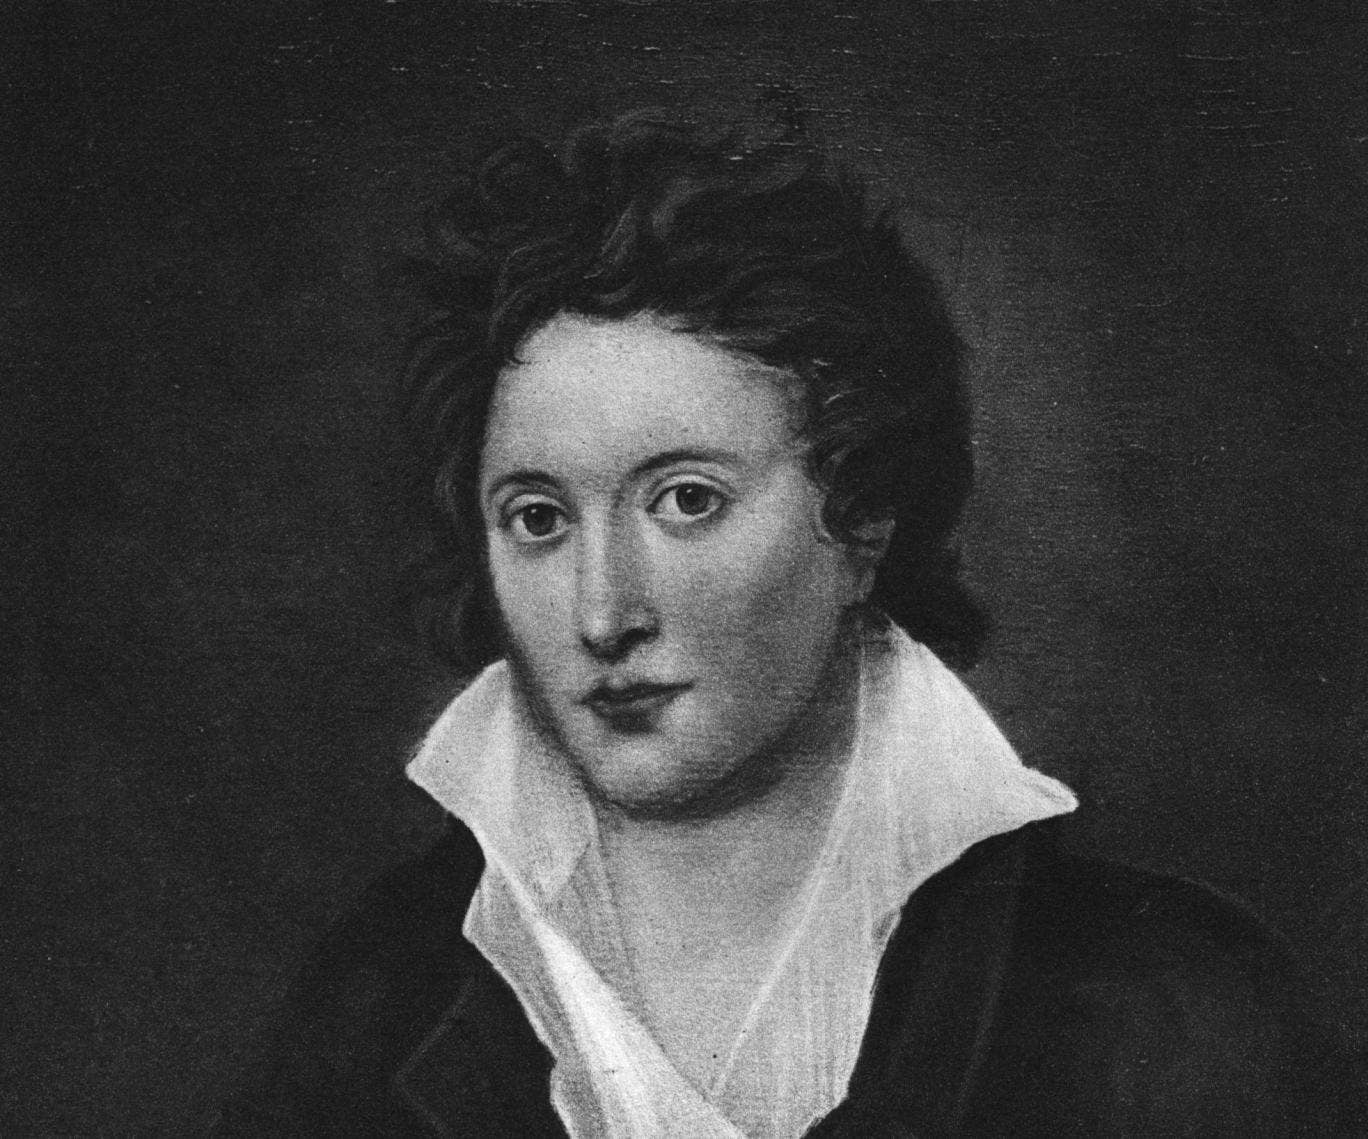 Percy shelley essay